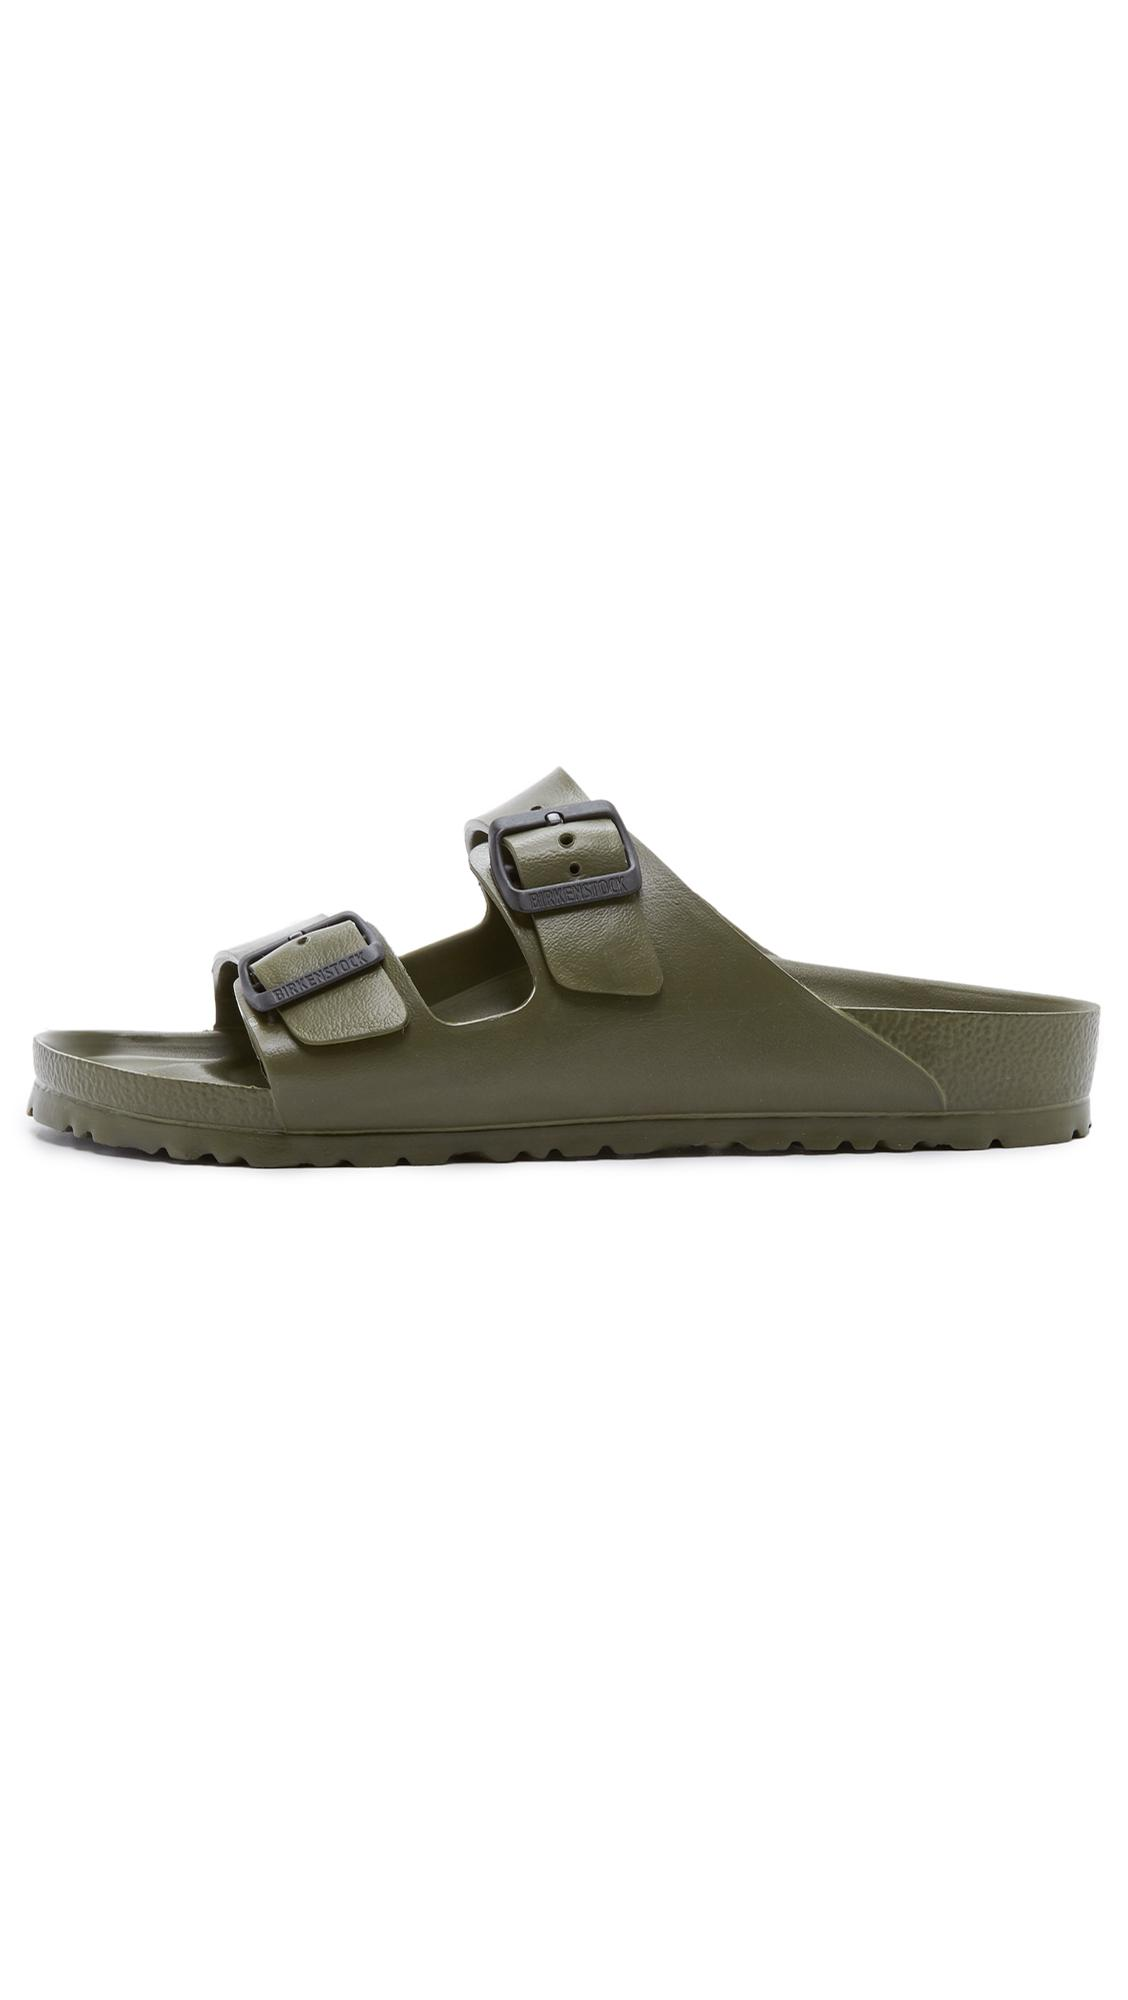 b201a08ad97 Birkenstock Eva Arizona Sandals in Natural for Men - Save 23% - Lyst